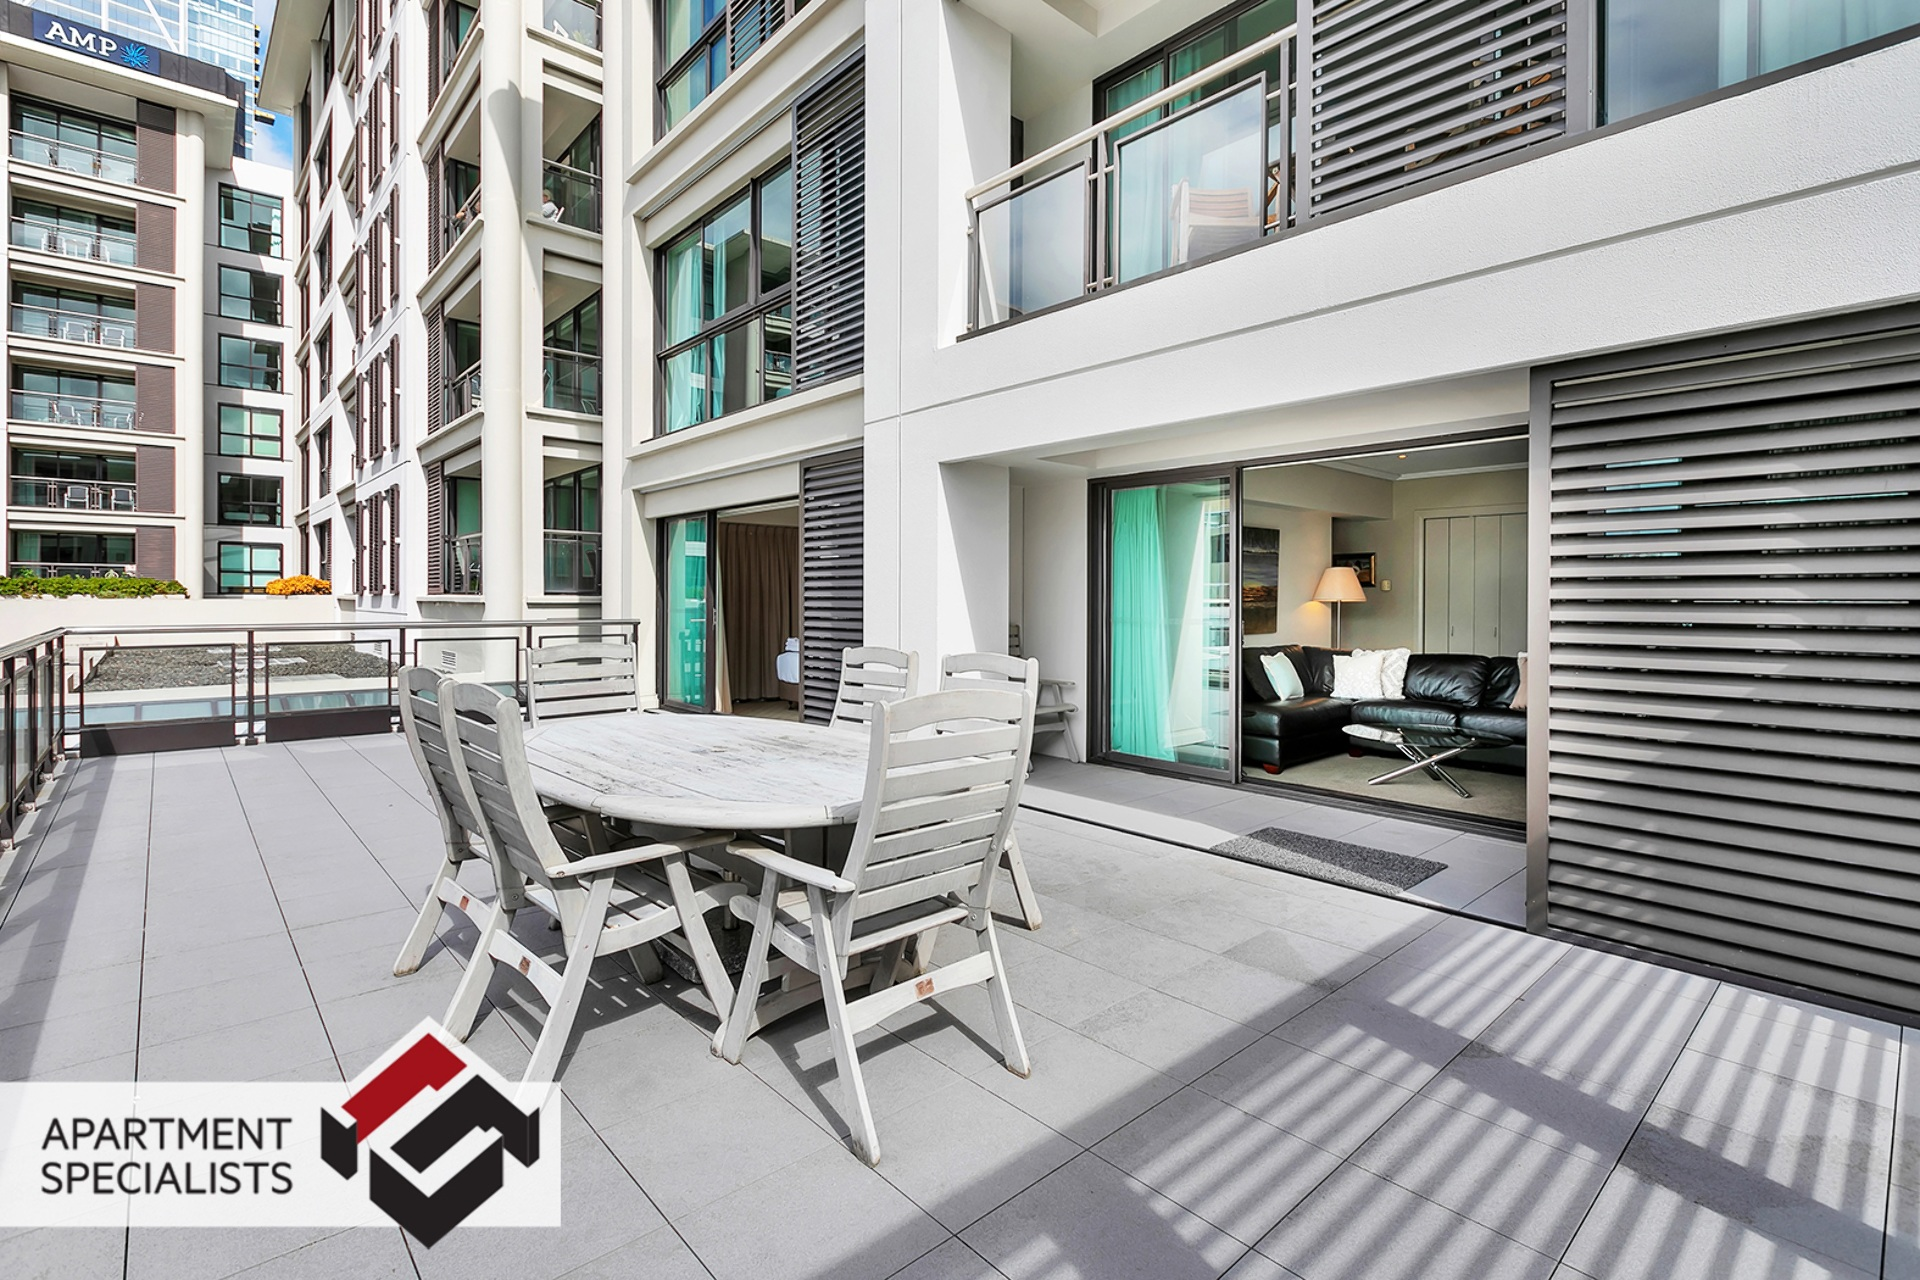 0 | 99 Customs Street West, City Centre | Apartment Specialists